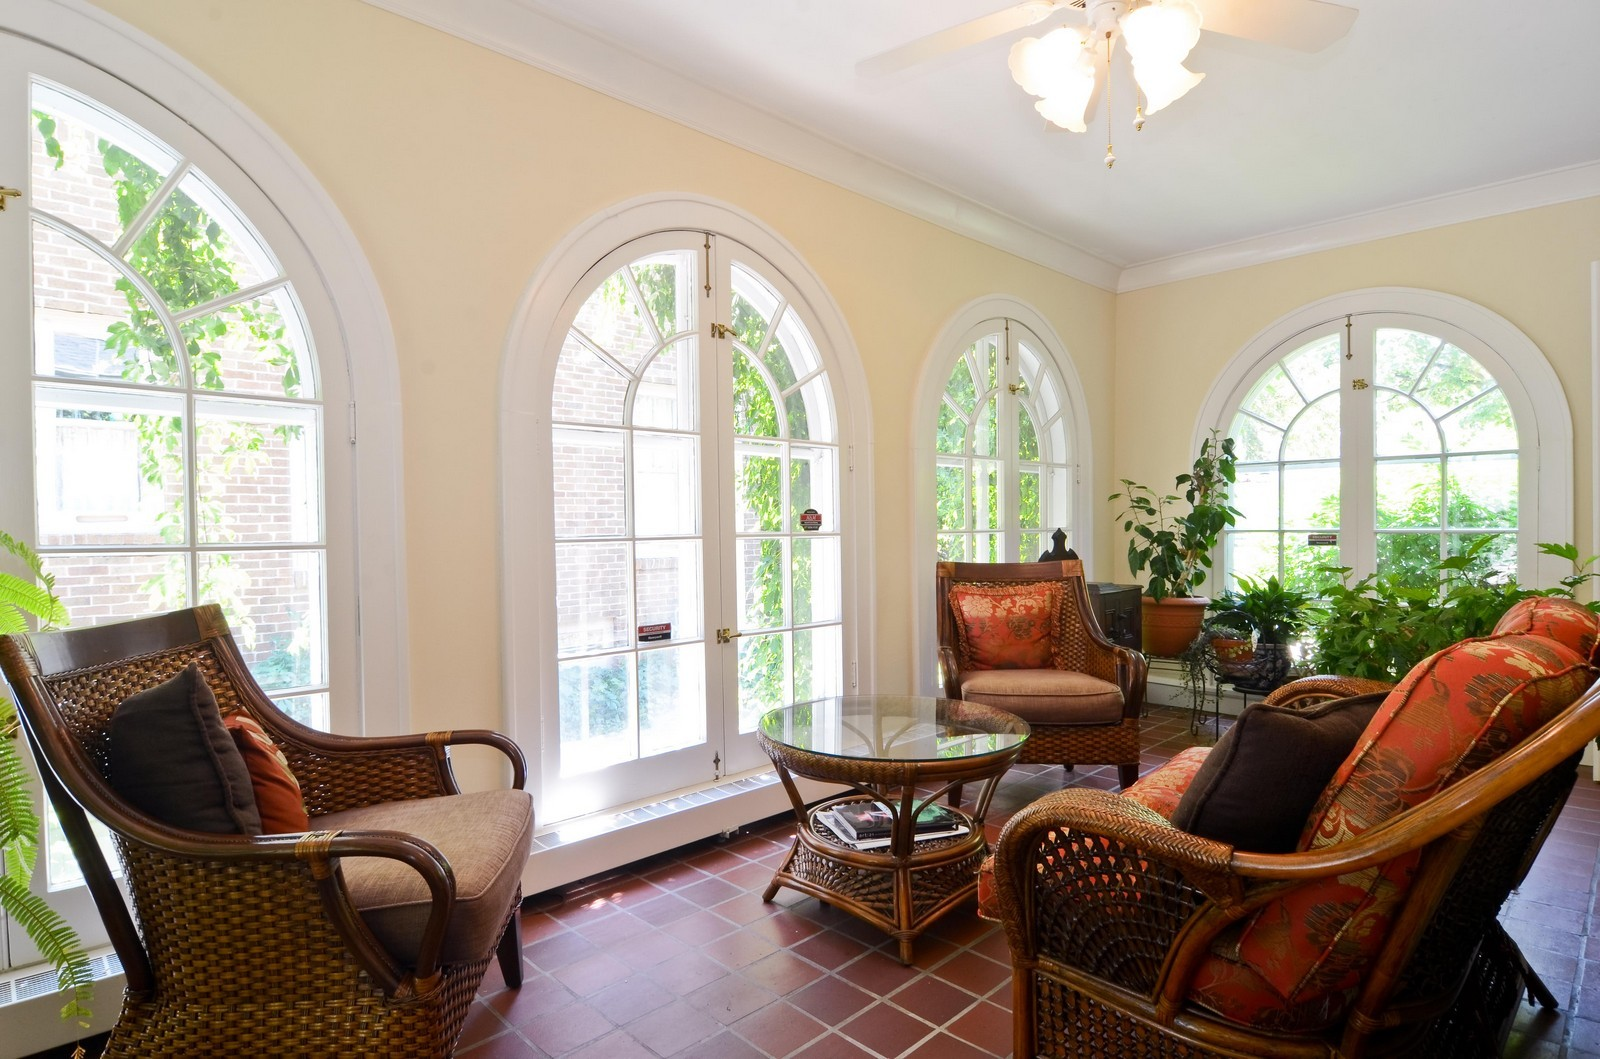 Real Estate Photography - 3444 N Hackett Ave, Milwaukee, WI, 53211 - Sun Room